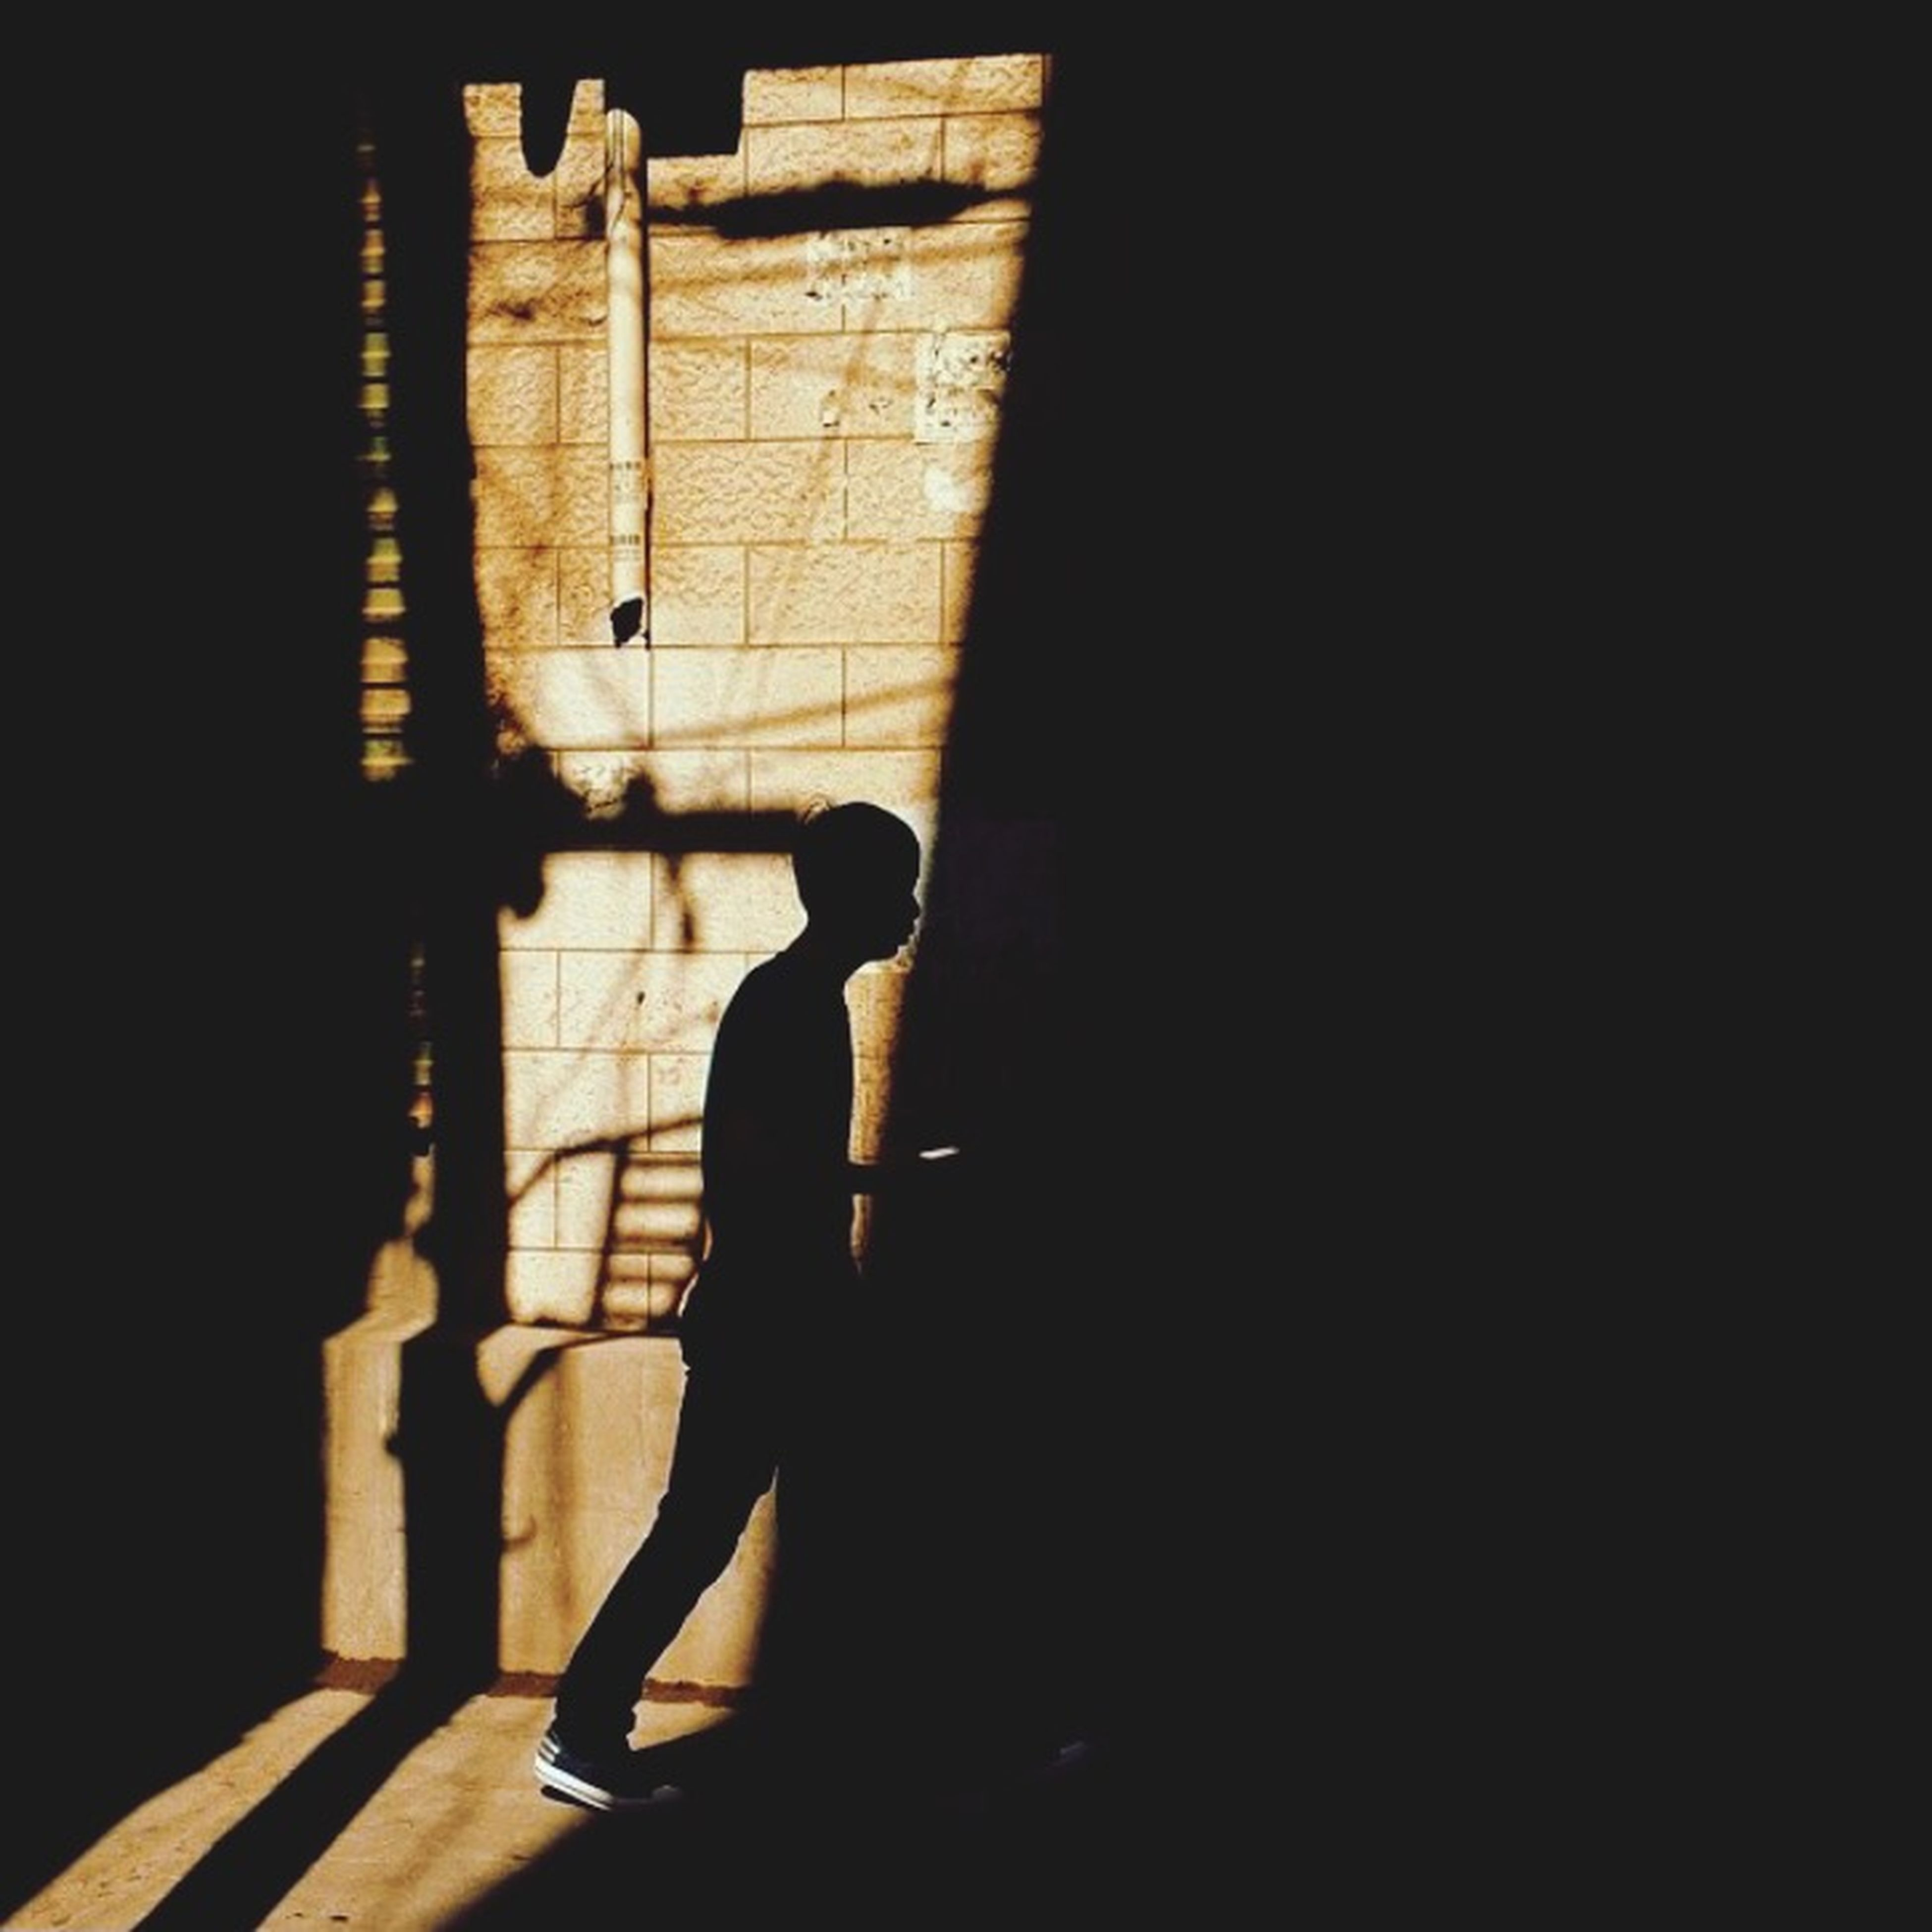 indoors, silhouette, lifestyles, shadow, full length, standing, dark, men, leisure activity, person, walking, wall - building feature, low section, rear view, night, side view, sunlight